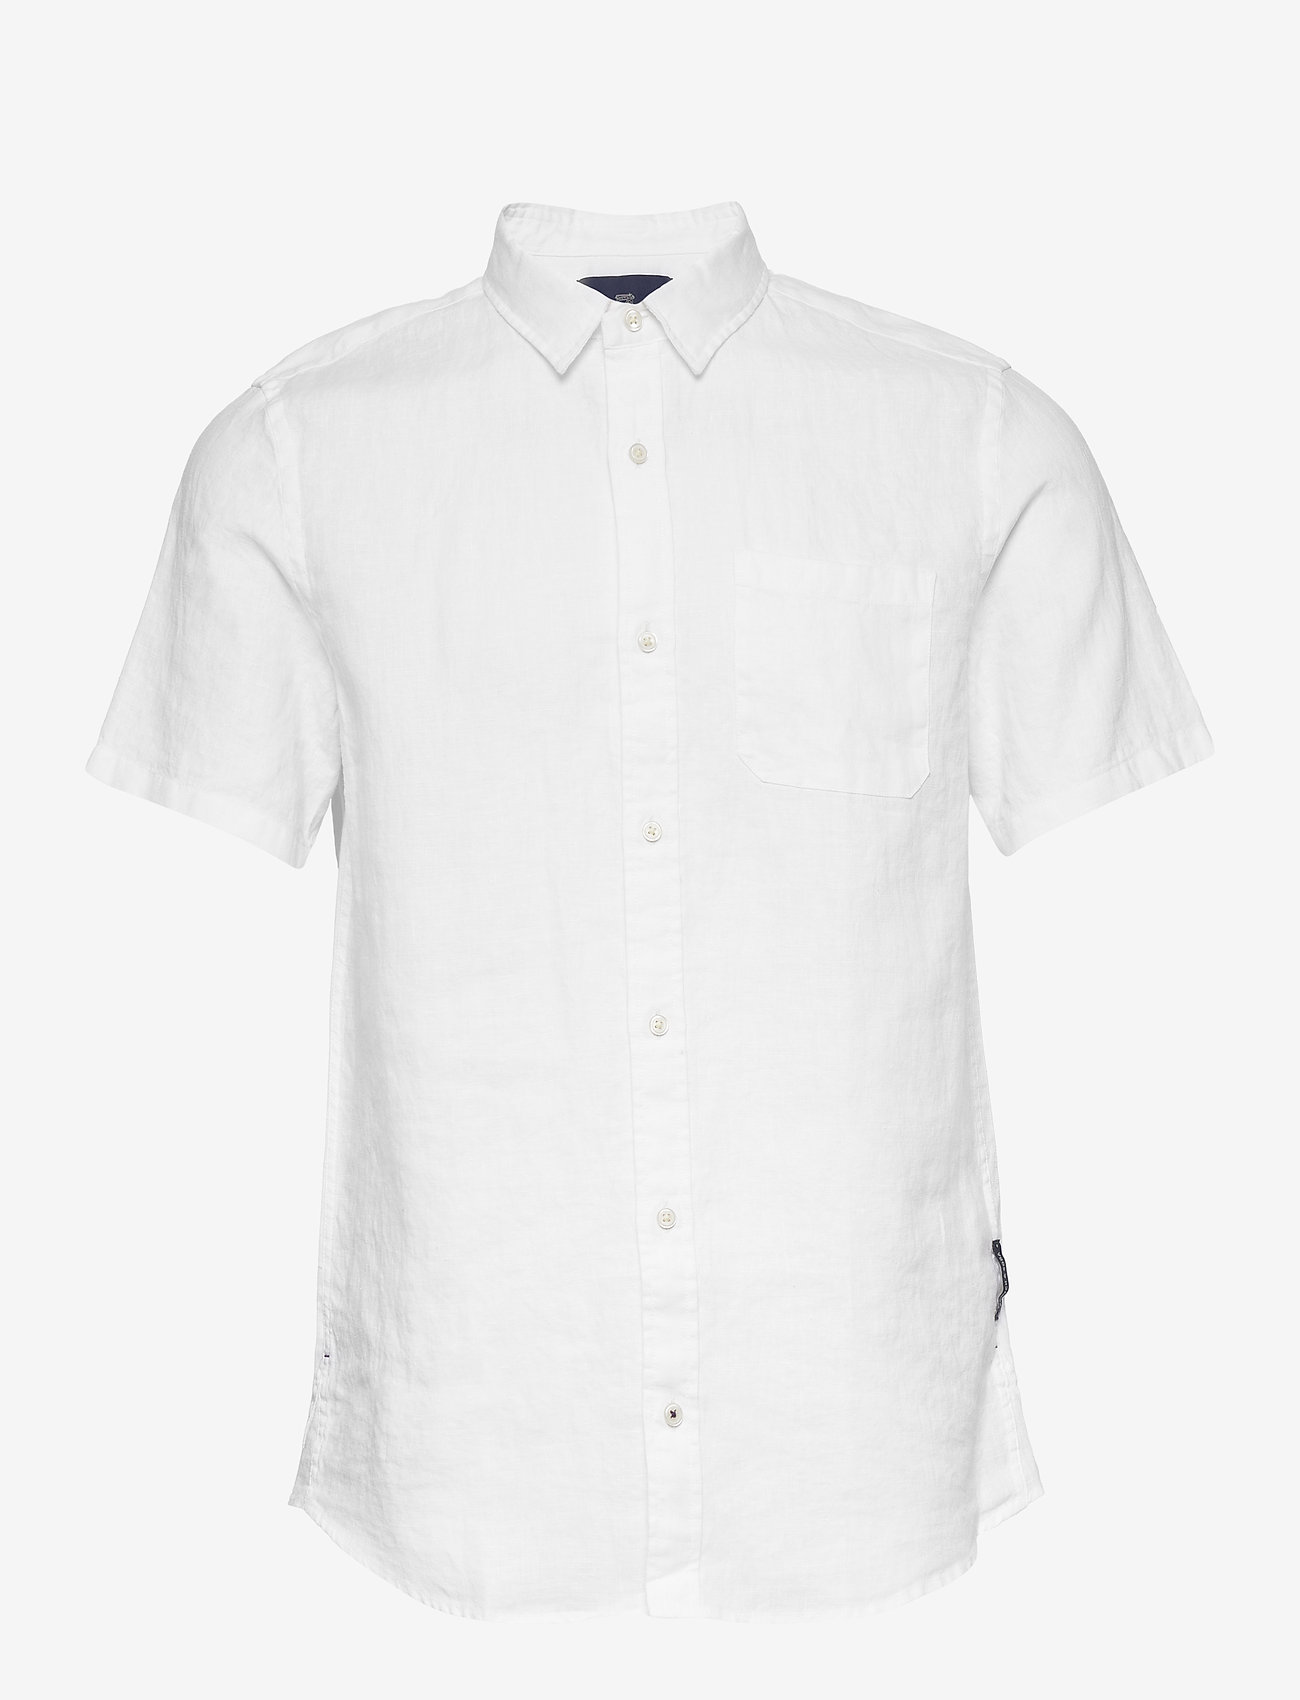 Scotch & Soda - REGULAR FIT- Shortsleeve garment -dyed linen shirt - basic shirts - white - 0